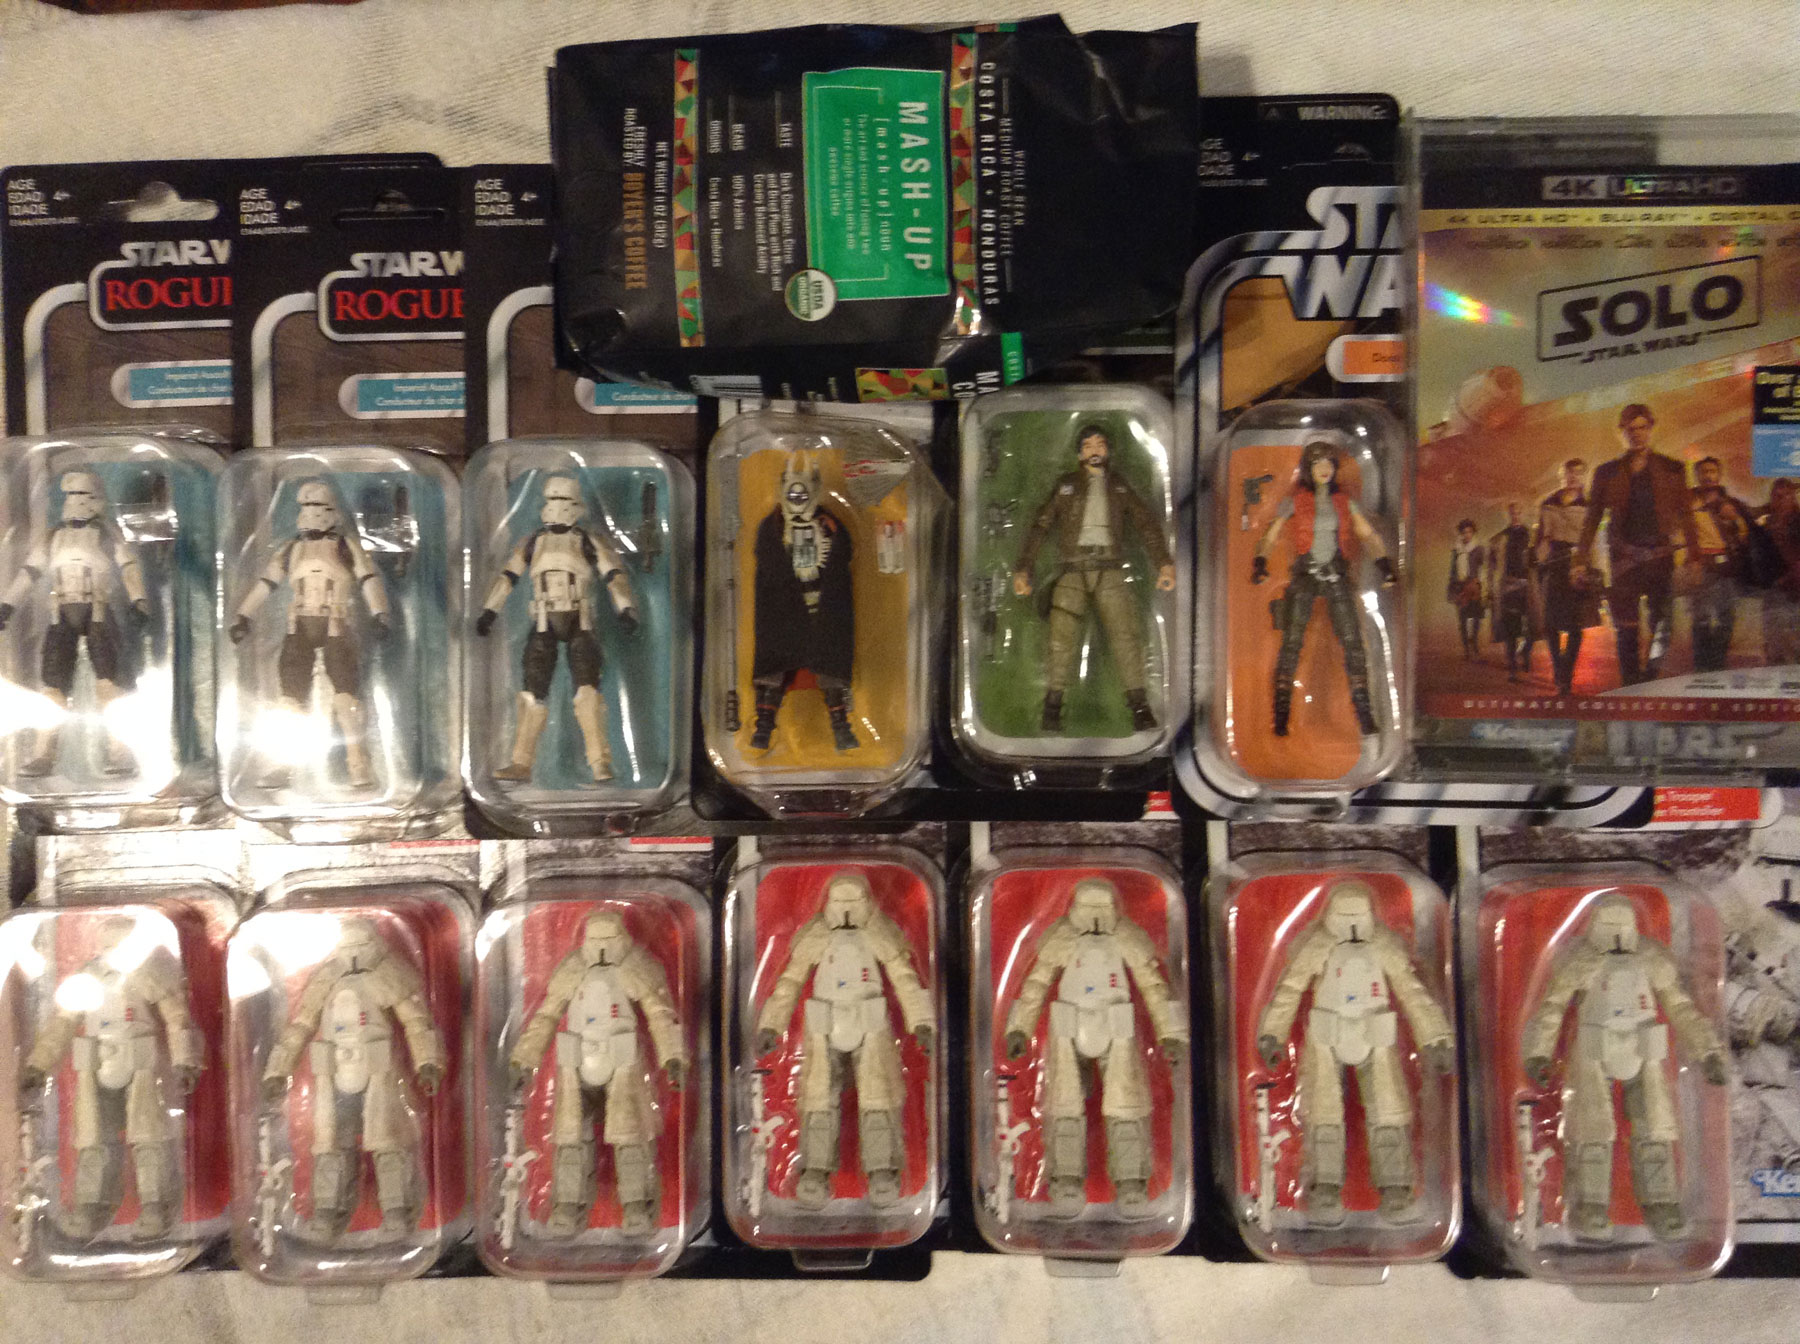 bd252c51ec8f JTA reader Scot M. found all of the latest The Vintage Collection basic  figures at his local Walmart for $2 a piece. You couldn't make this up if  you tried.